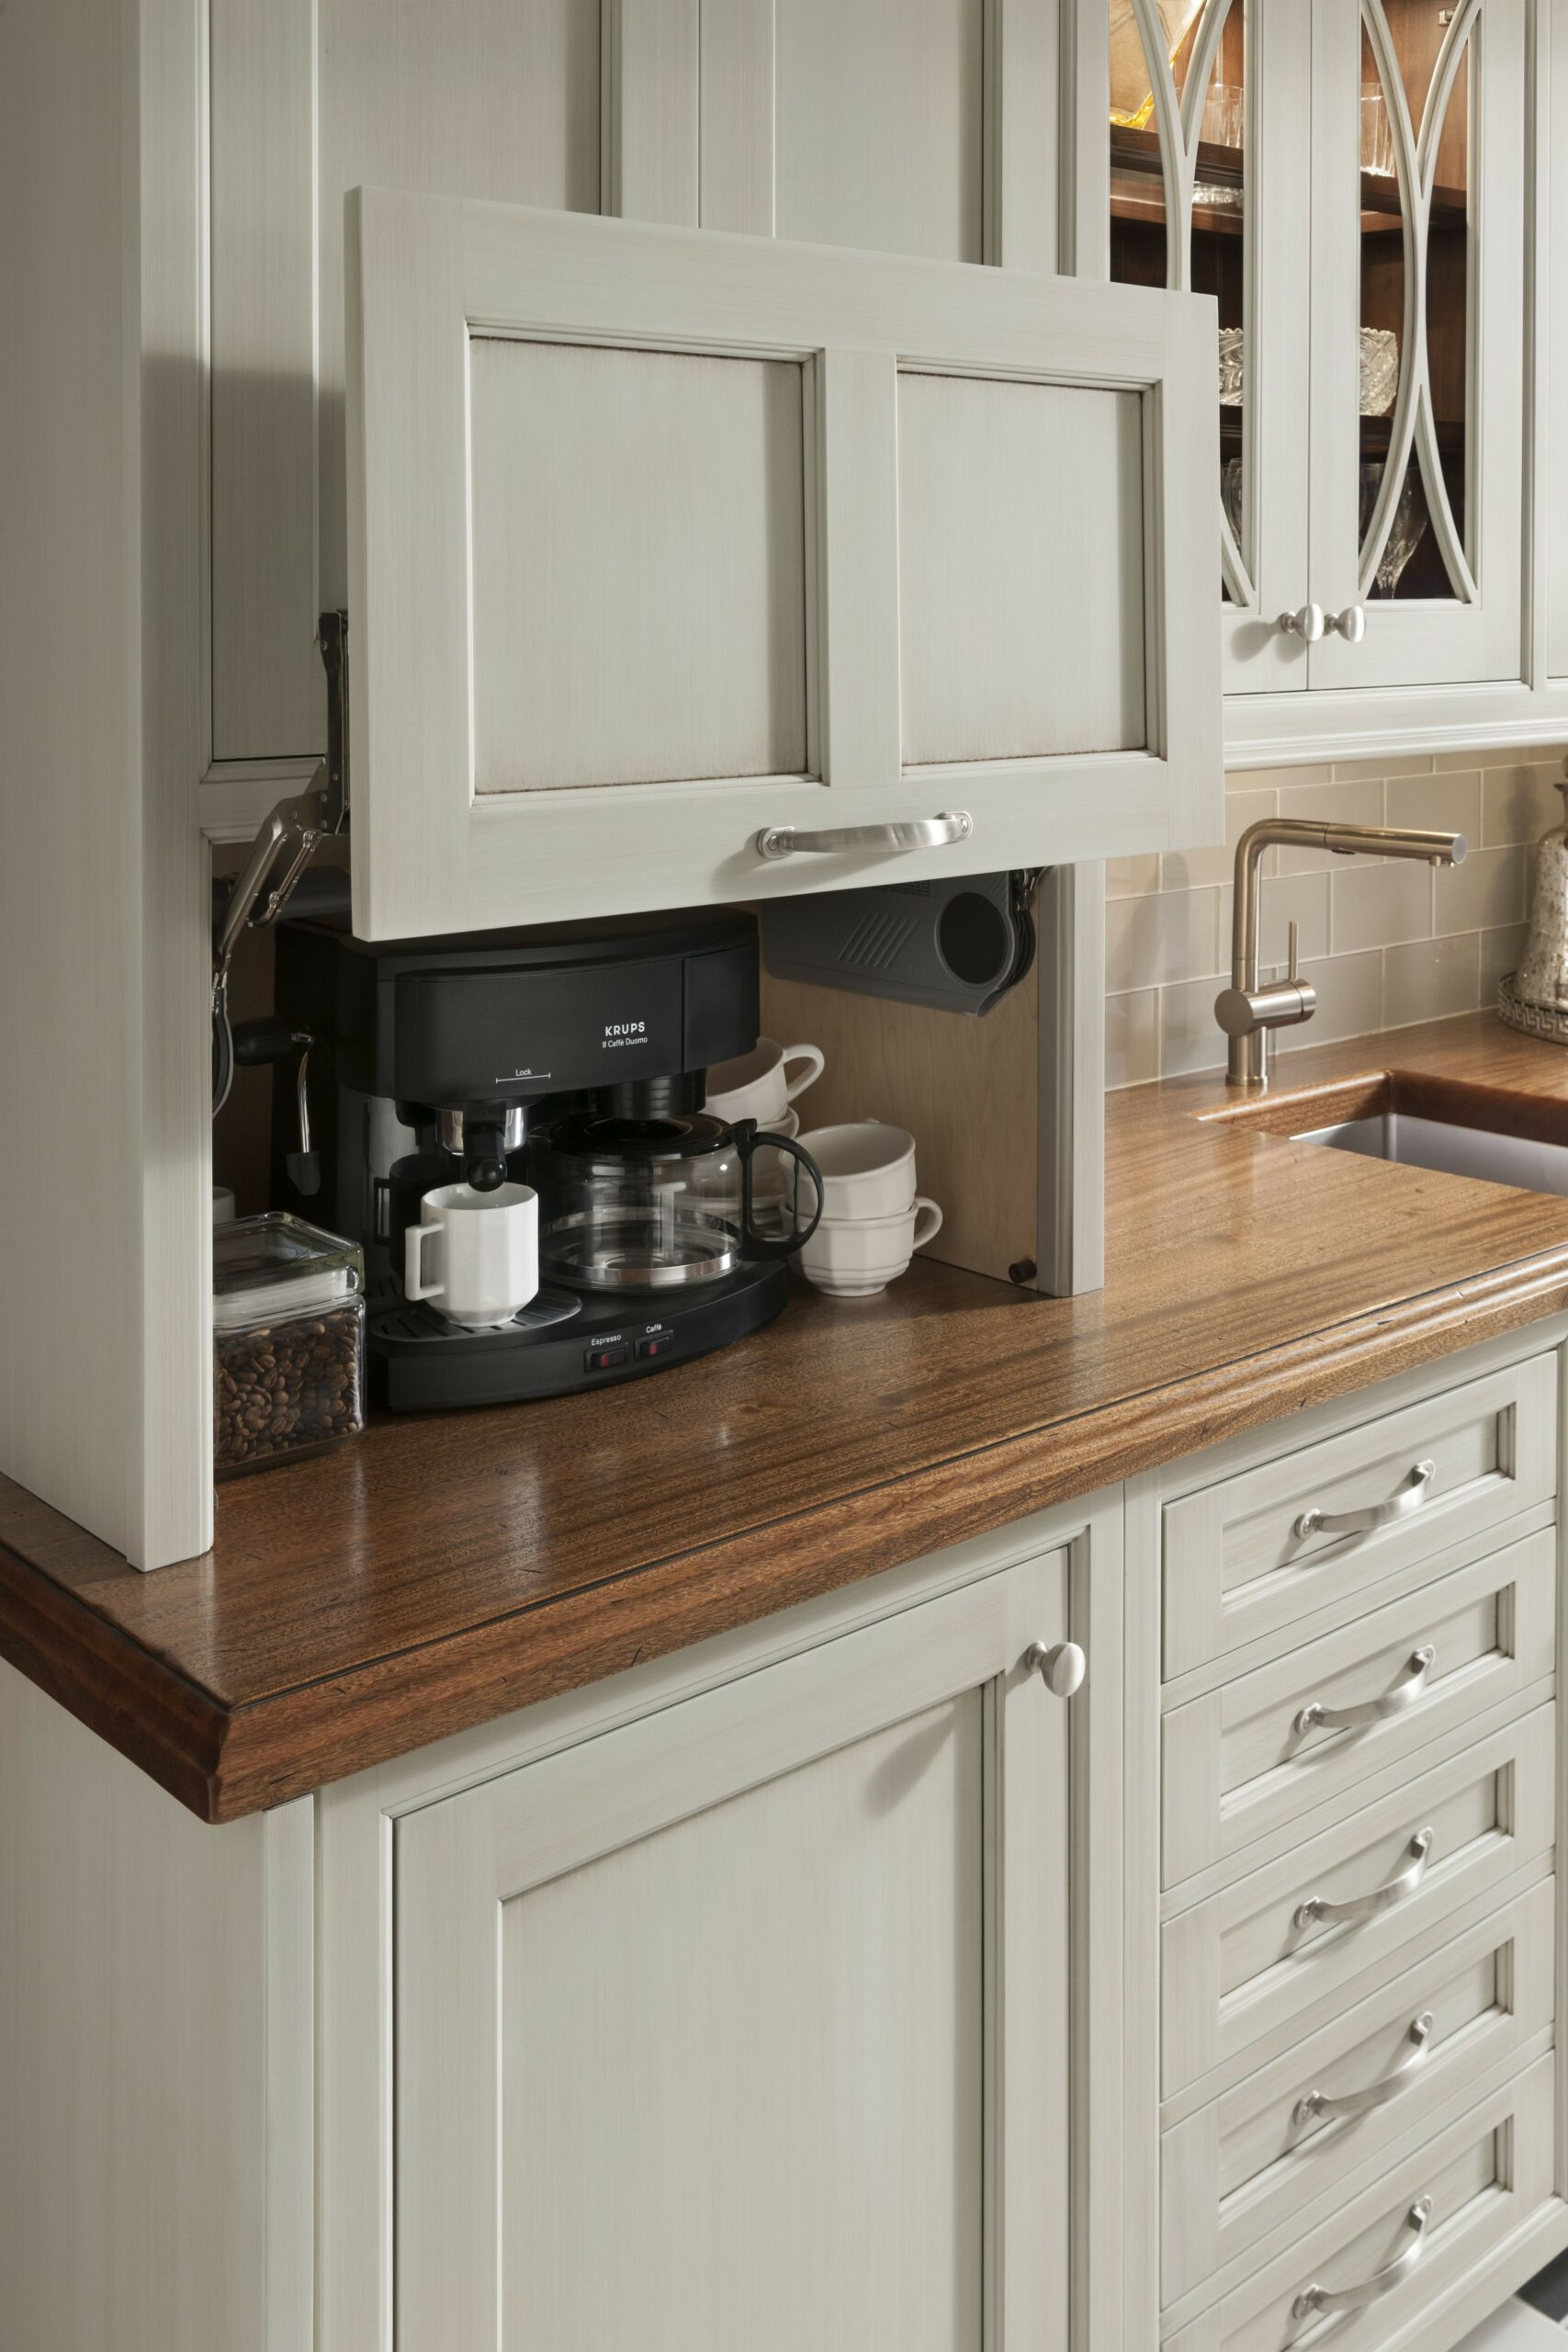 71 Painted Kitchen Cabinets Ideas For Home Decor 19